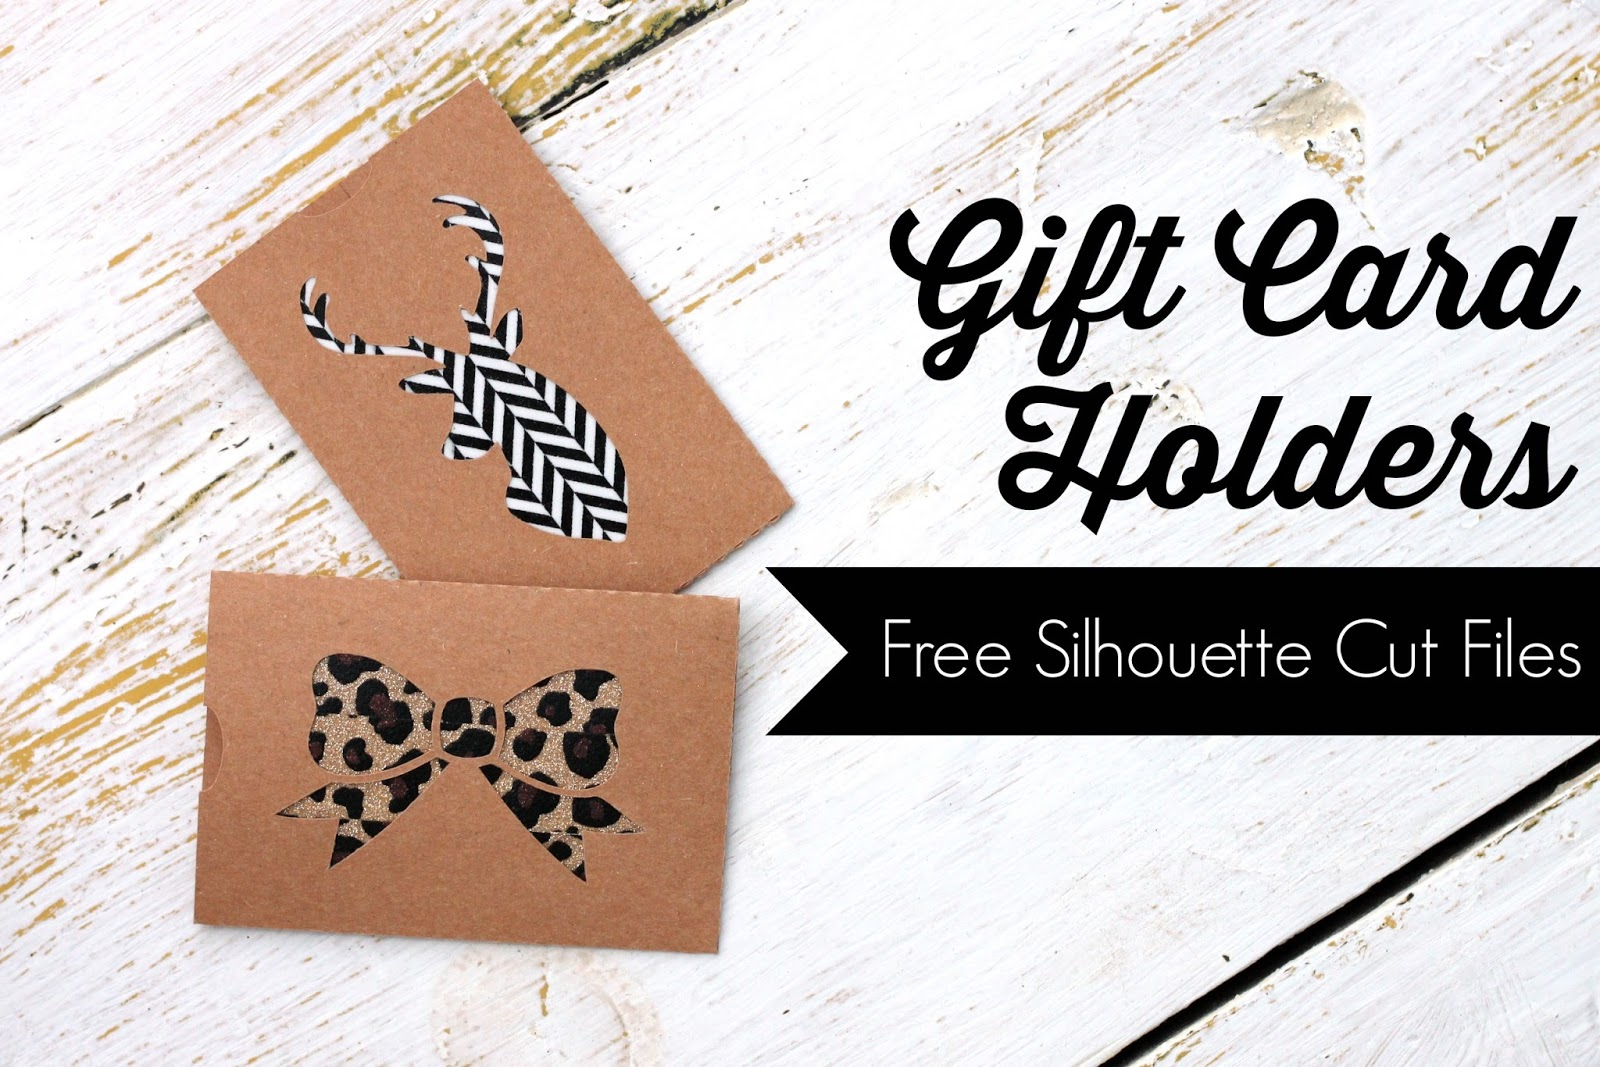 Pitterandglink diy gift card holders with free silhouette cut files diy gift card holders with free silhouette cut files via pitterandglink negle Choice Image